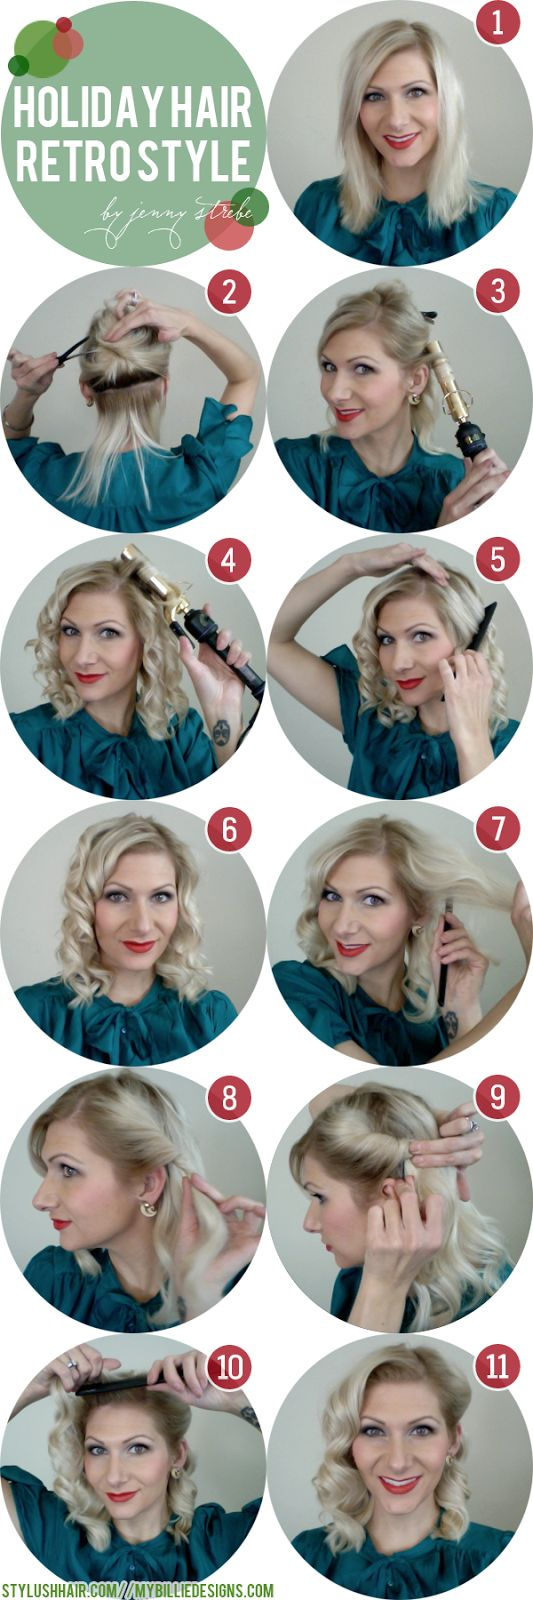 17 ways to make the vintage hairstyles | holiday hair, retro curls